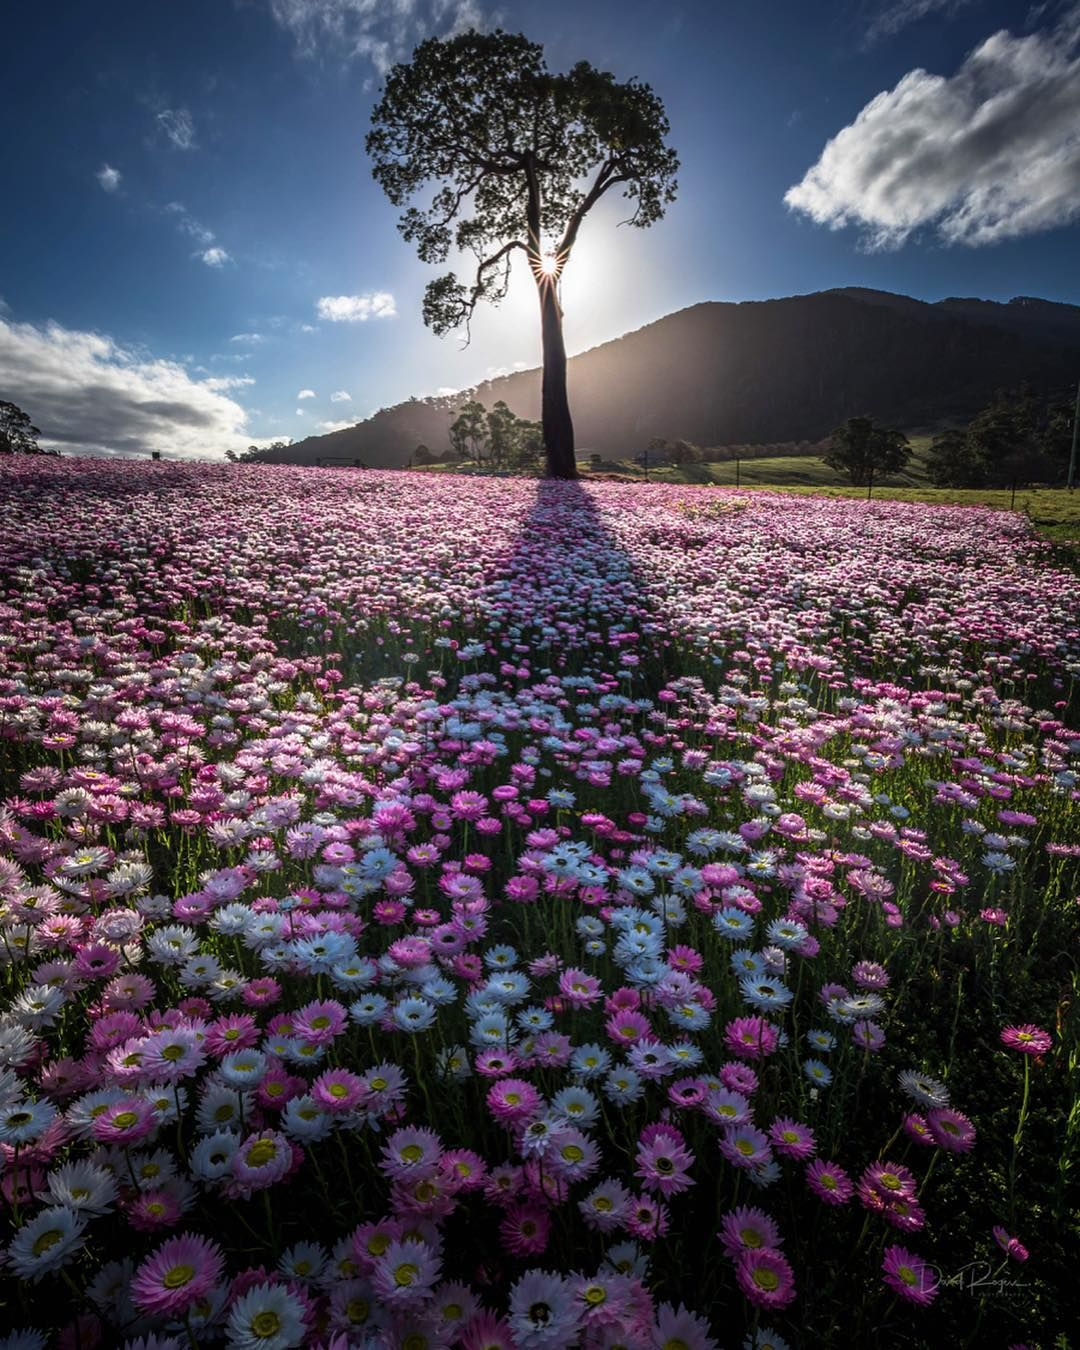 Pin By Dora Cheatham On Flowers In The Fields Beautiful Landscape Photography Landscape Photography Nature Photography